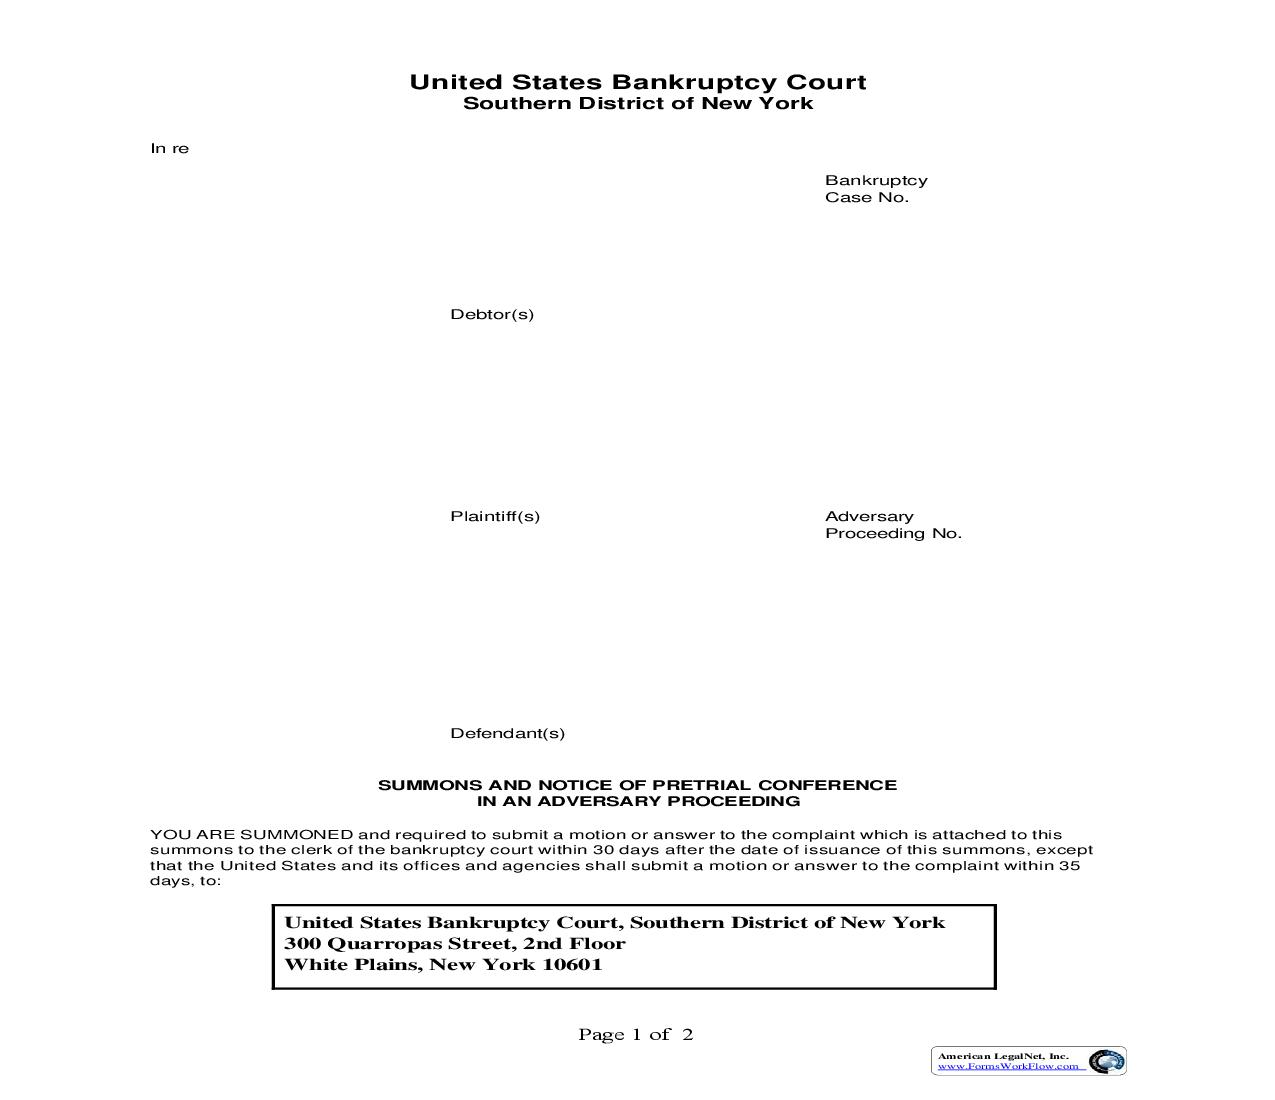 Summons And Notice Of Pretrial Conference In An Adversarial Proceeding (White Plains) | Pdf Fpdf Doc Docx | New York